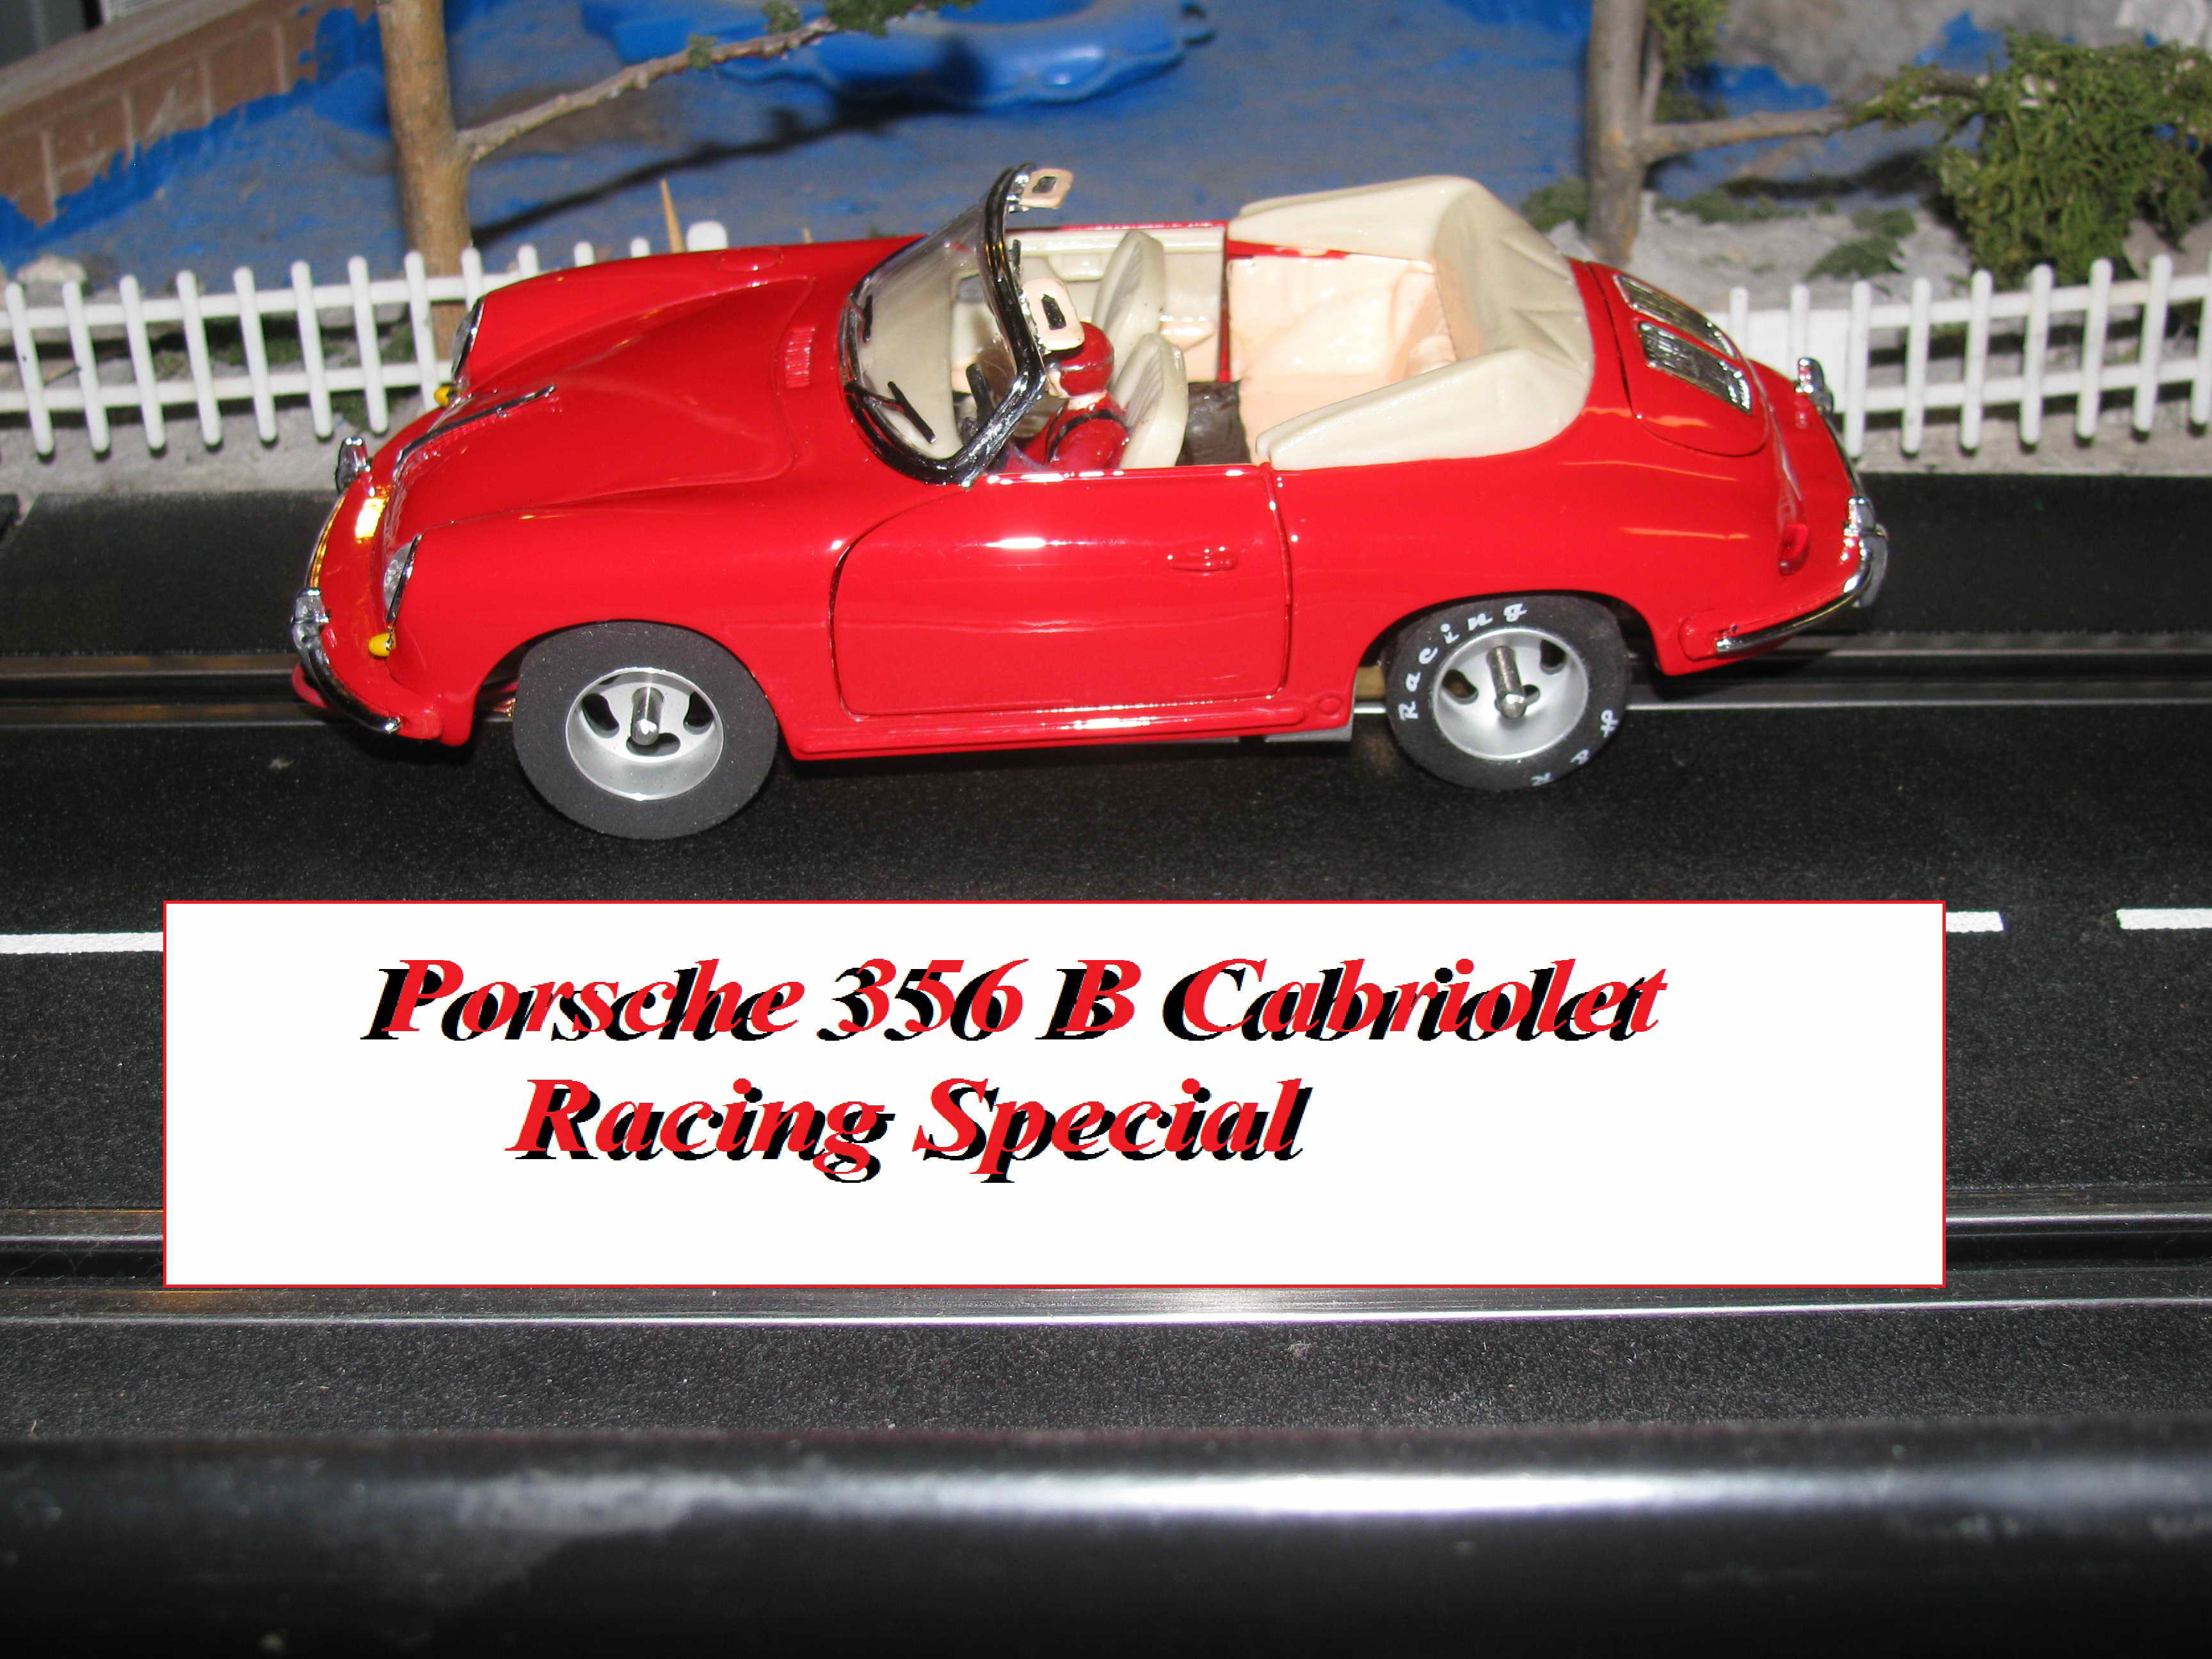 Porsche 356 B Cabriolet Custom Slot Car Racer with many Modifications 1/24 Scale  - SPECIAL SALE PRICE